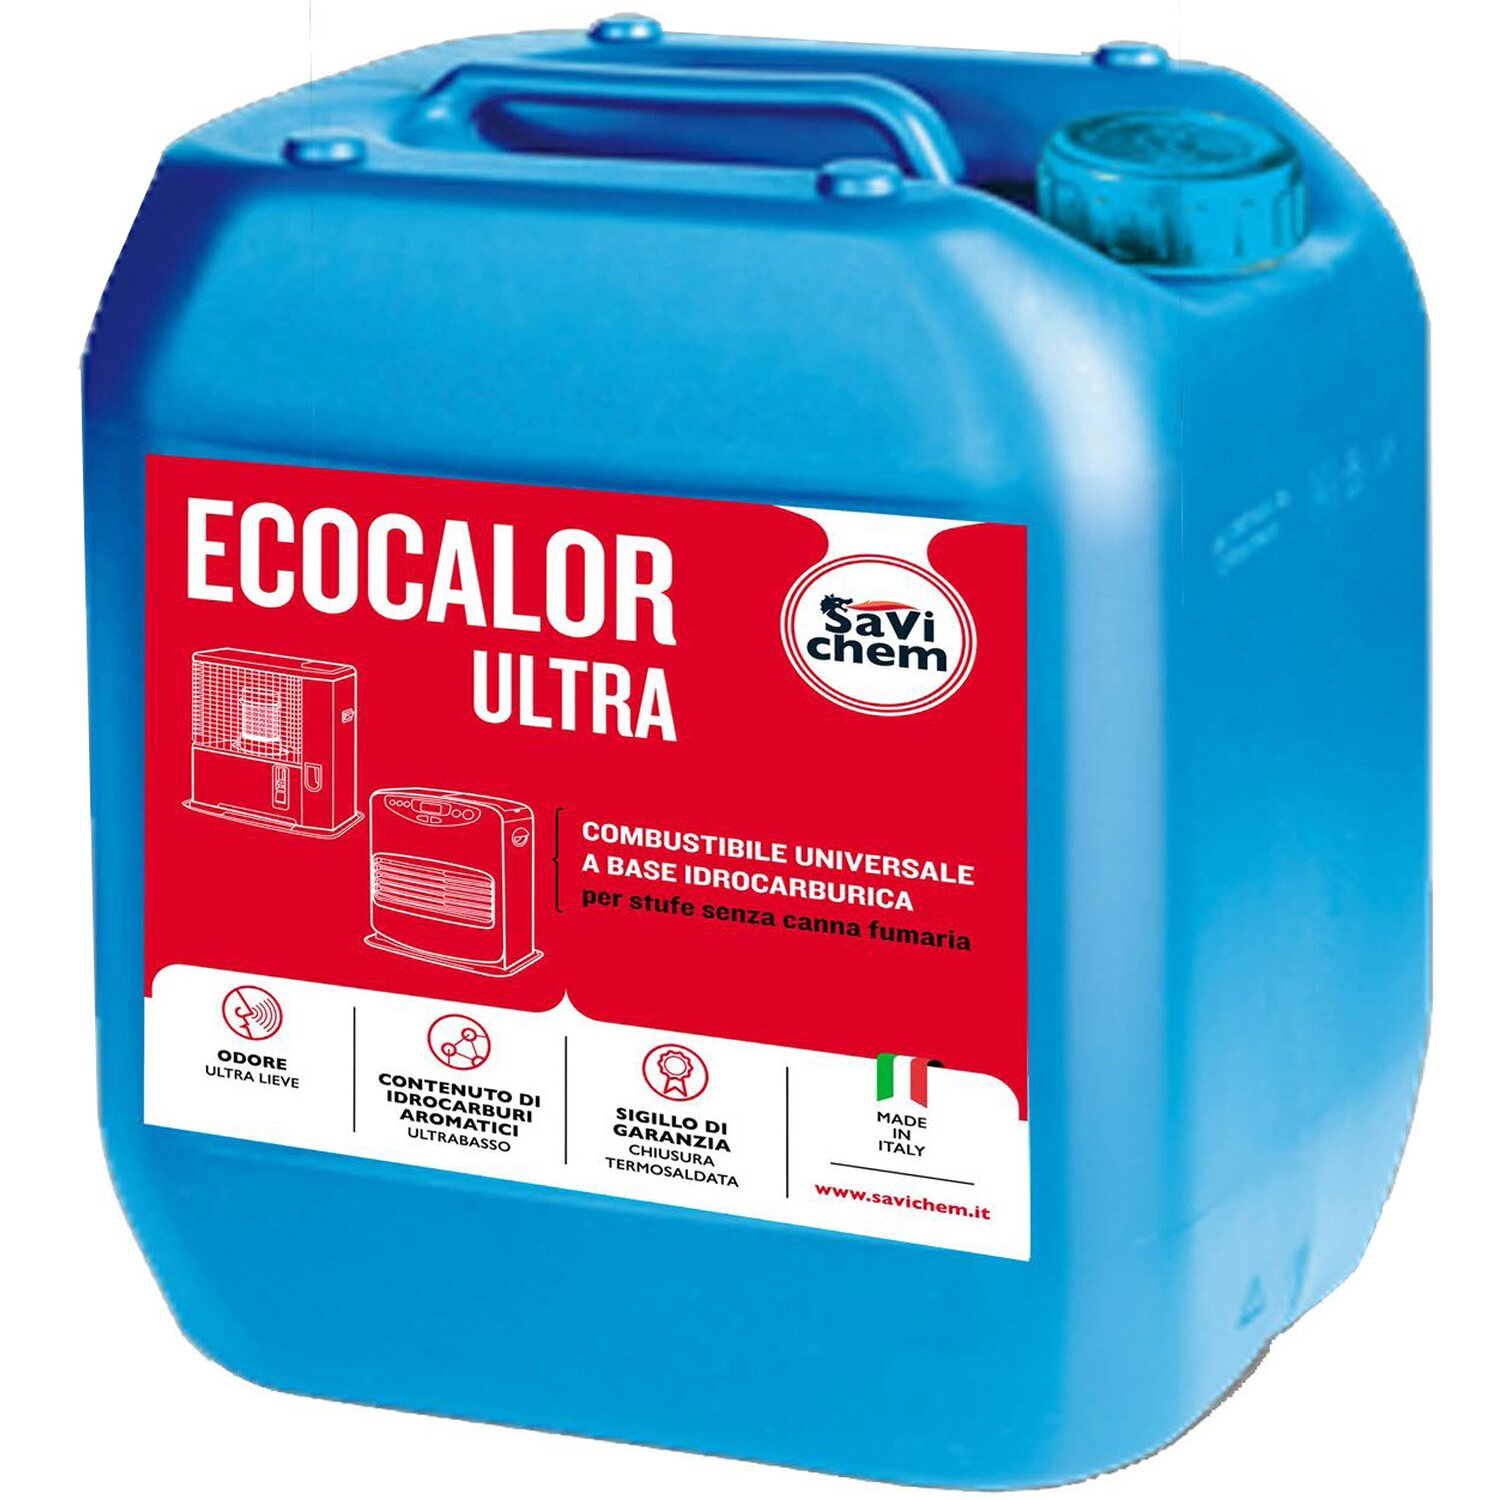 Combustibile liquido per ecocalor ultra tanica 5 l for Obi stufe a combustibile liquido